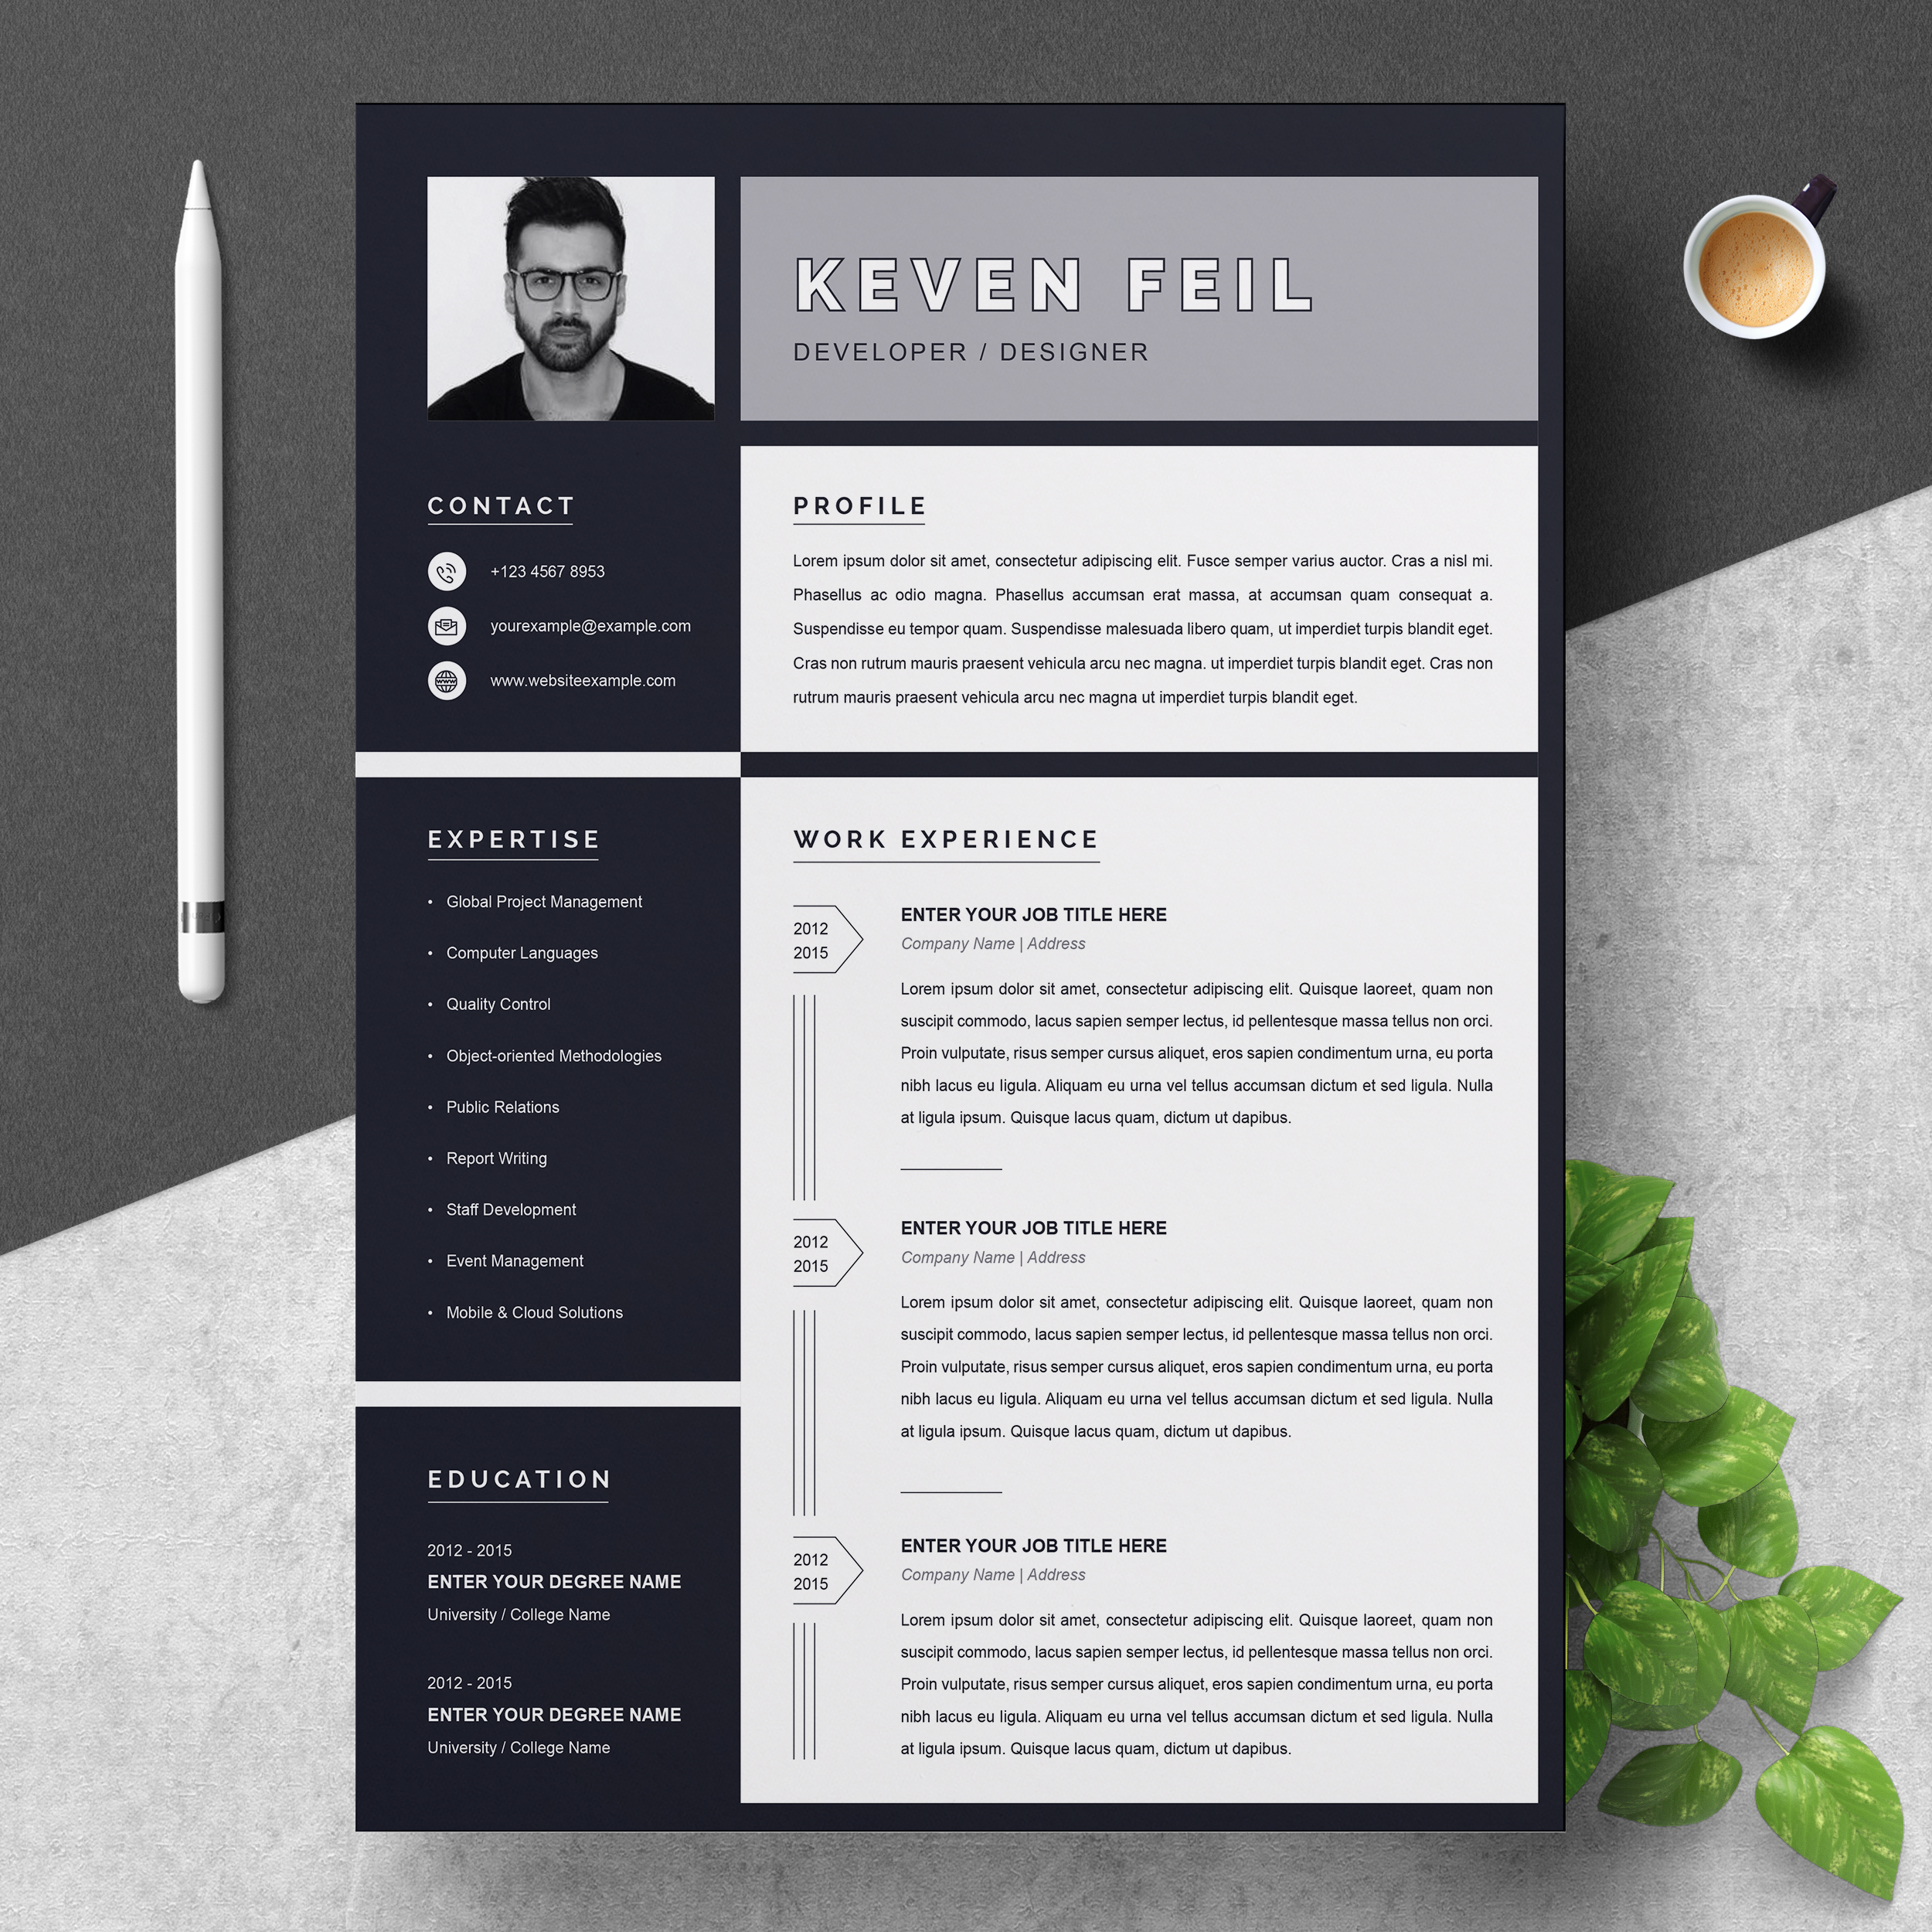 free resume templates pick from over a hundred resume templates below to ease your resume writing process. Resume Cv Template Black White Free Resumes Templates Pixelify Net